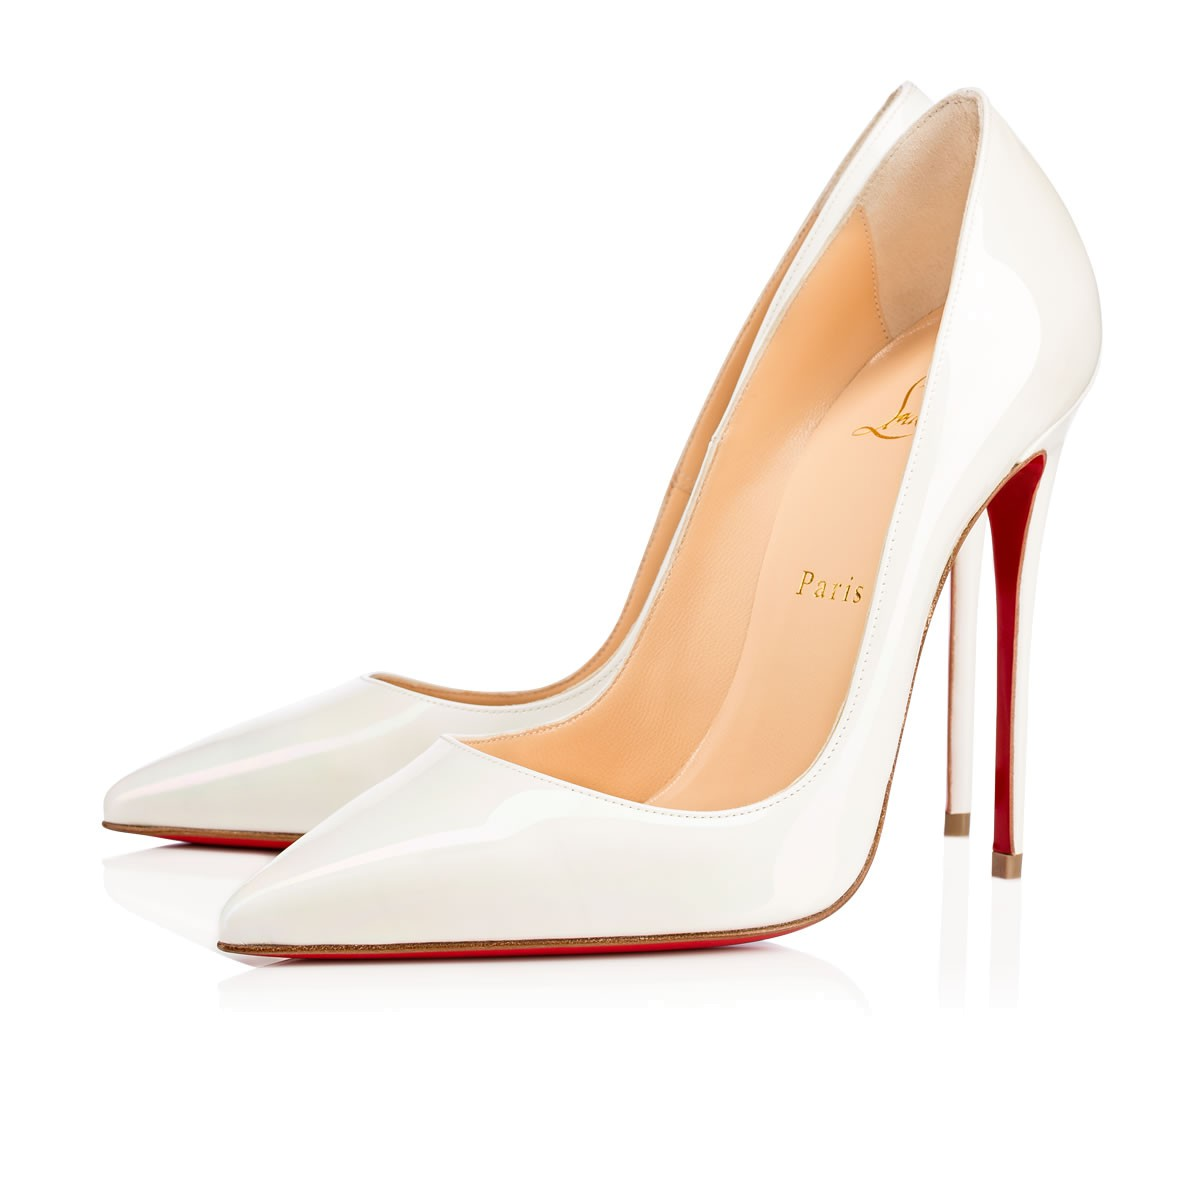 29f78e6d58e8 Christian Louboutin So Kate 120 Patent-Leather Pumps In White